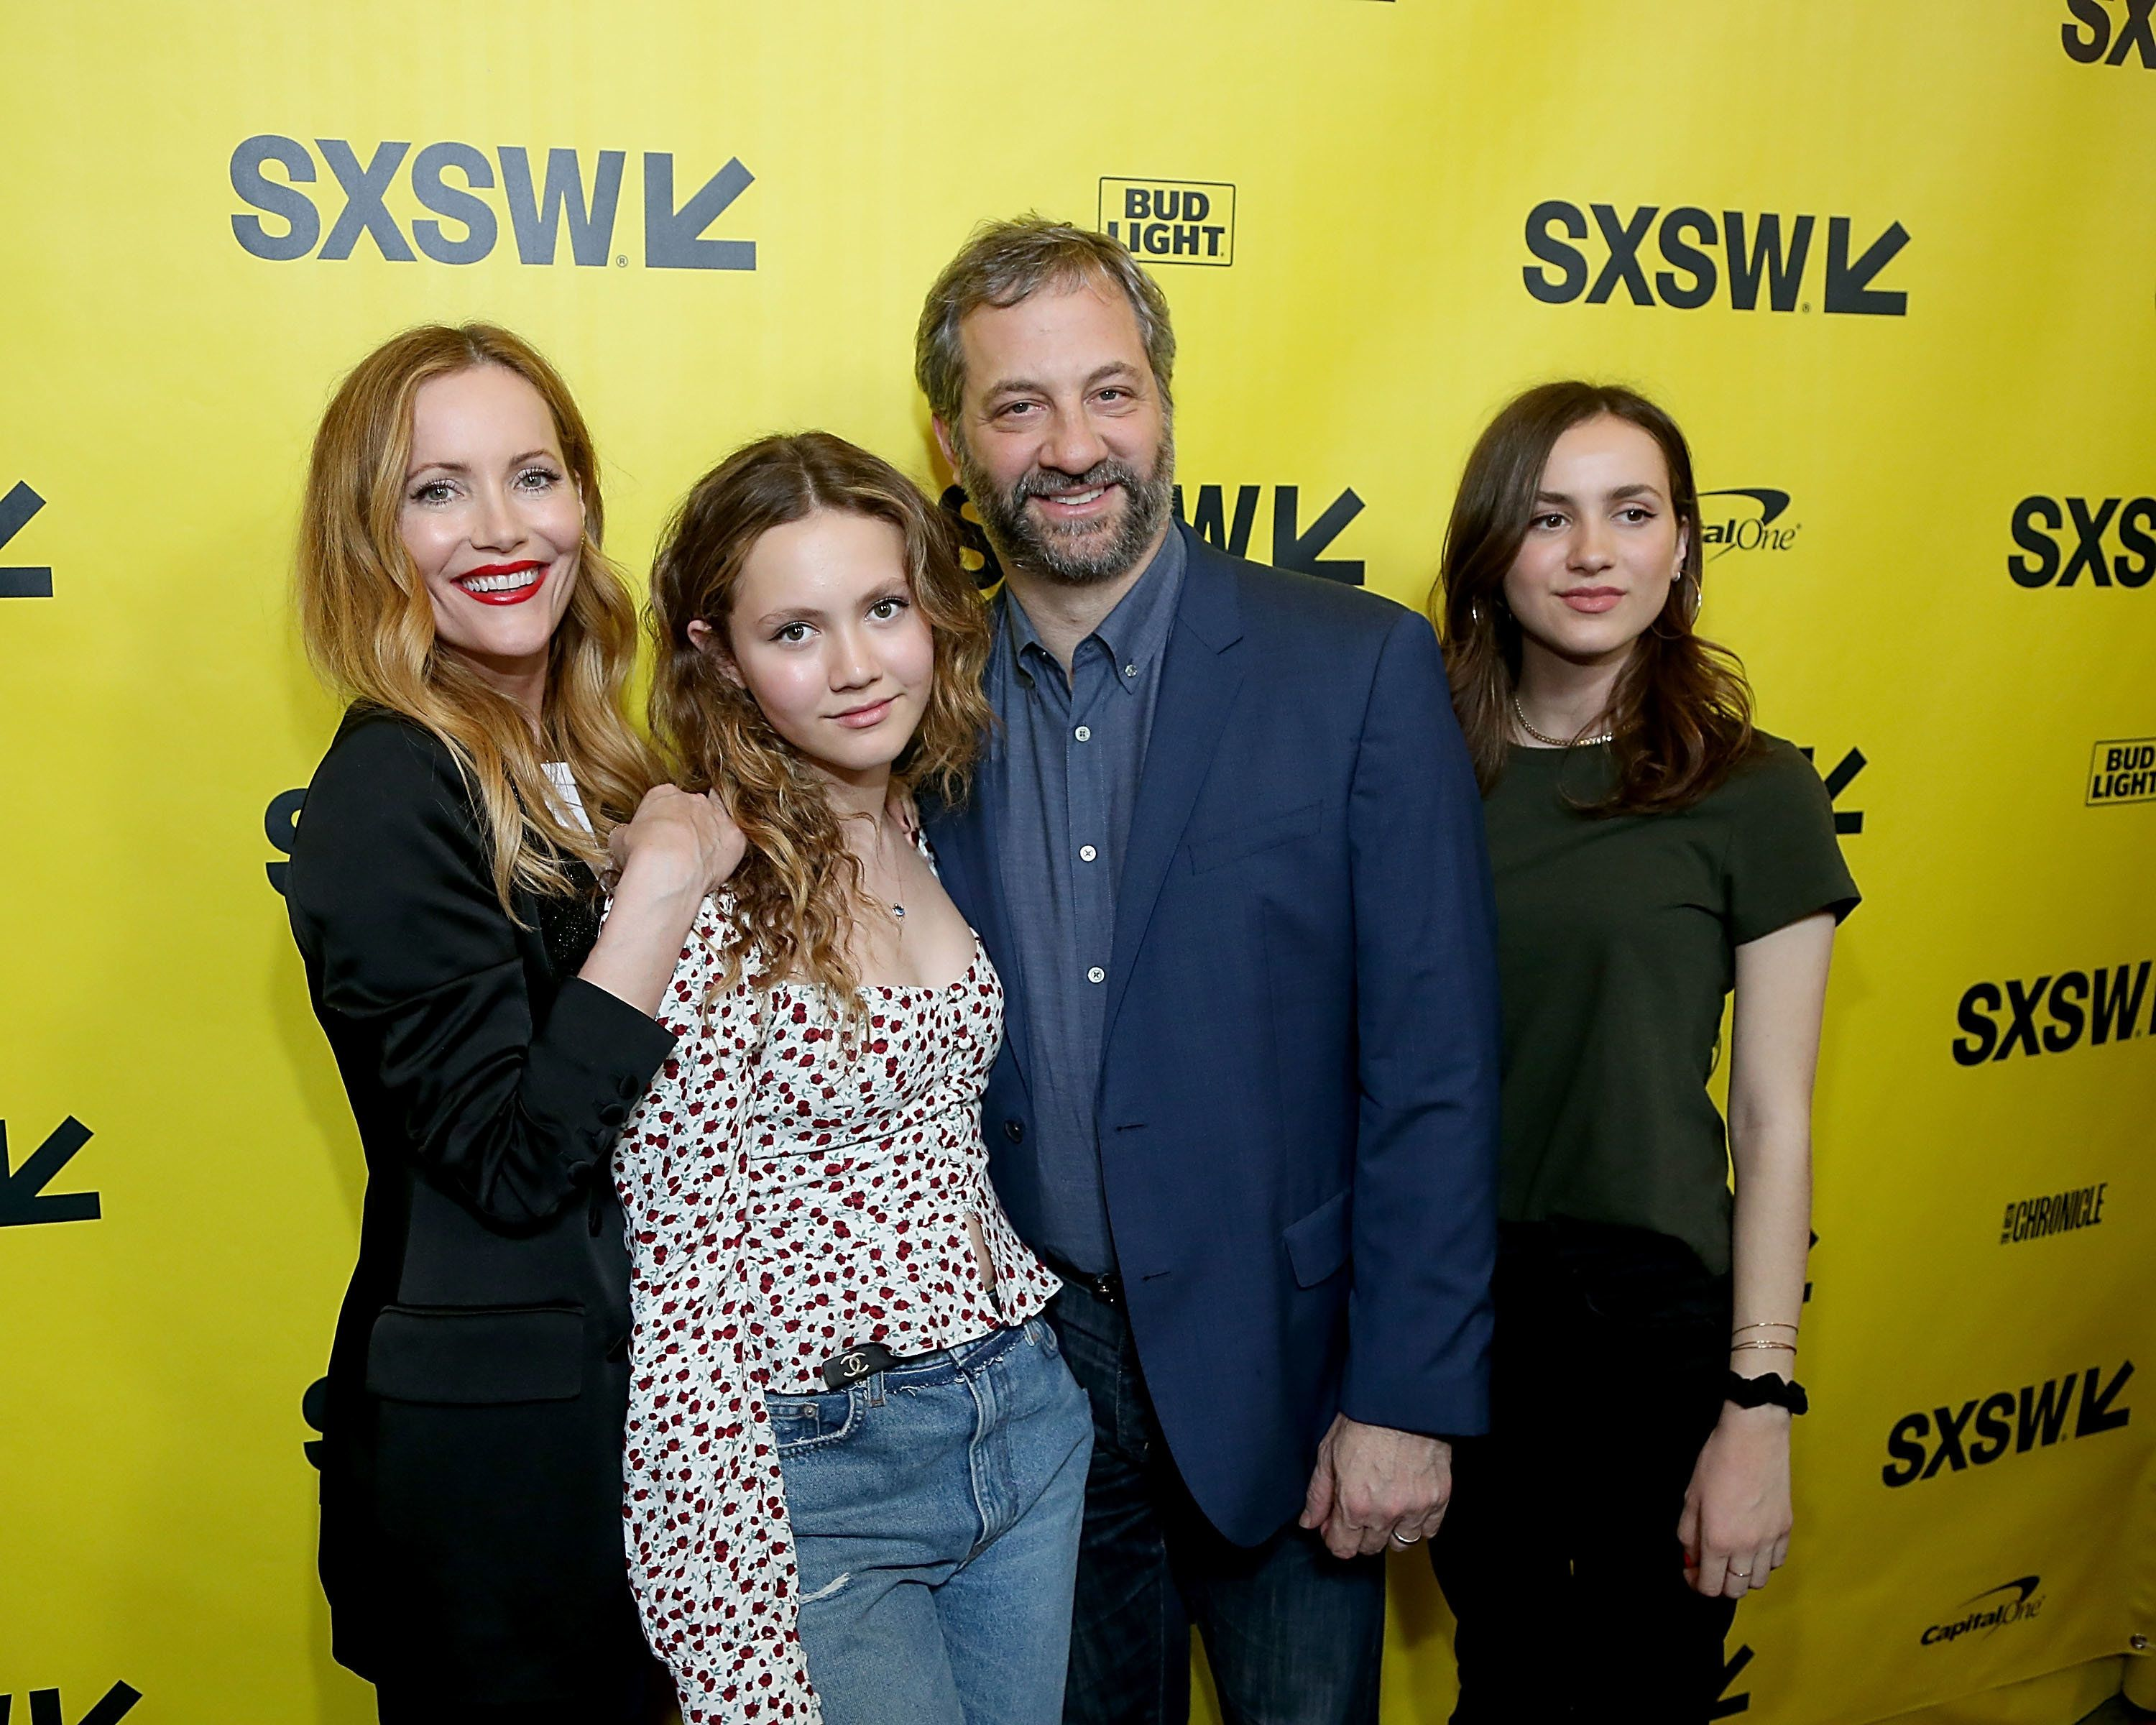 AUSTIN, TEXAS - MARCH 10:  (L - R) Iris Apatow, Leslie Mann, Judd Apatow and Maude Apatow attend the premiere of Blockers at the Paramount Theatre  on March 10, 2018 in Austin, Texas.  (Photo by Gary Miller/FilmMagic)